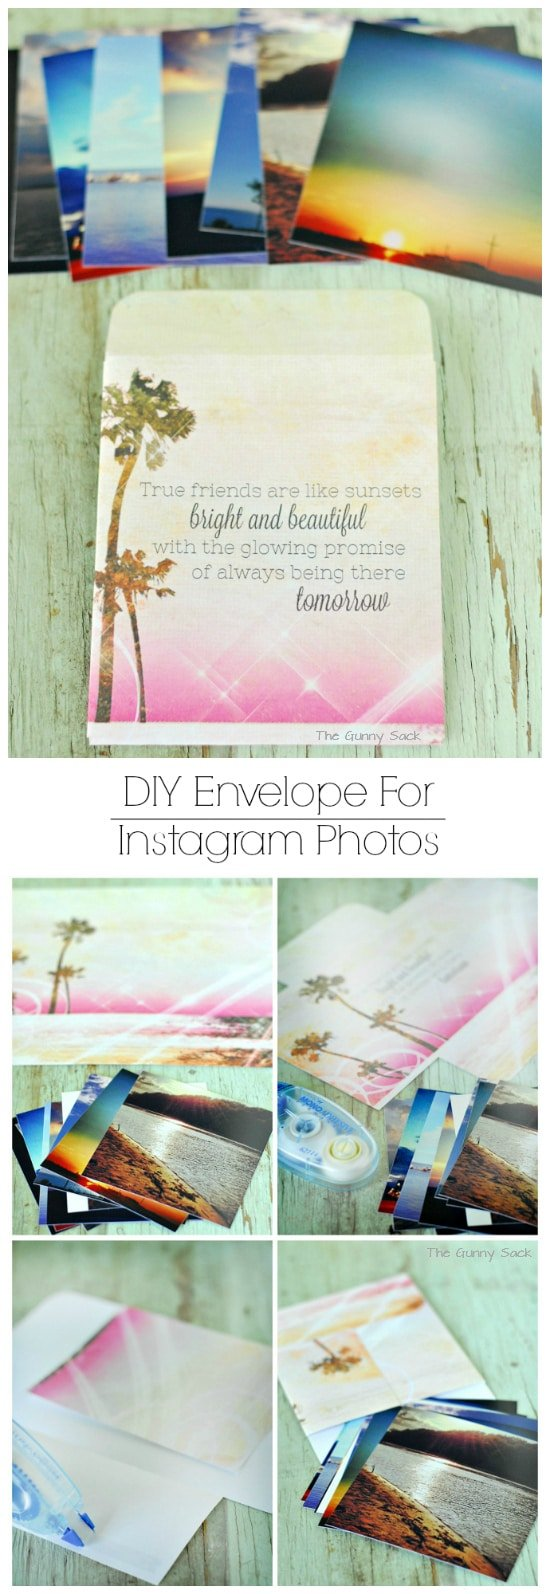 DIY Envelope For Instagram Photos #shop